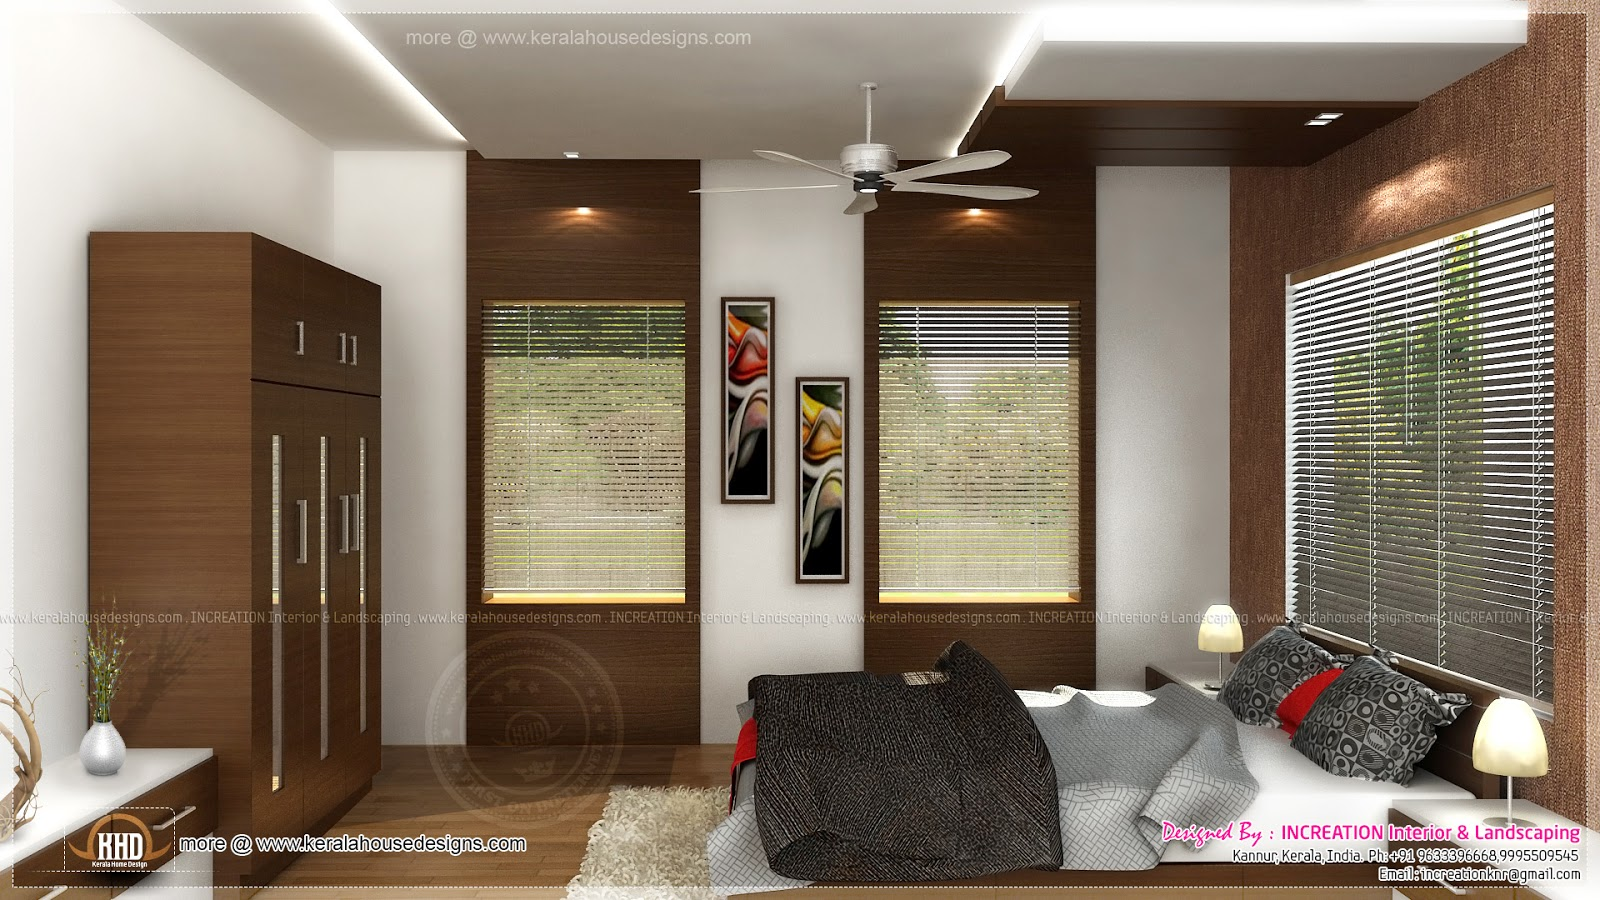 Interior designs from kannur kerala kerala home design Home makers interior designers decorators pvt ltd